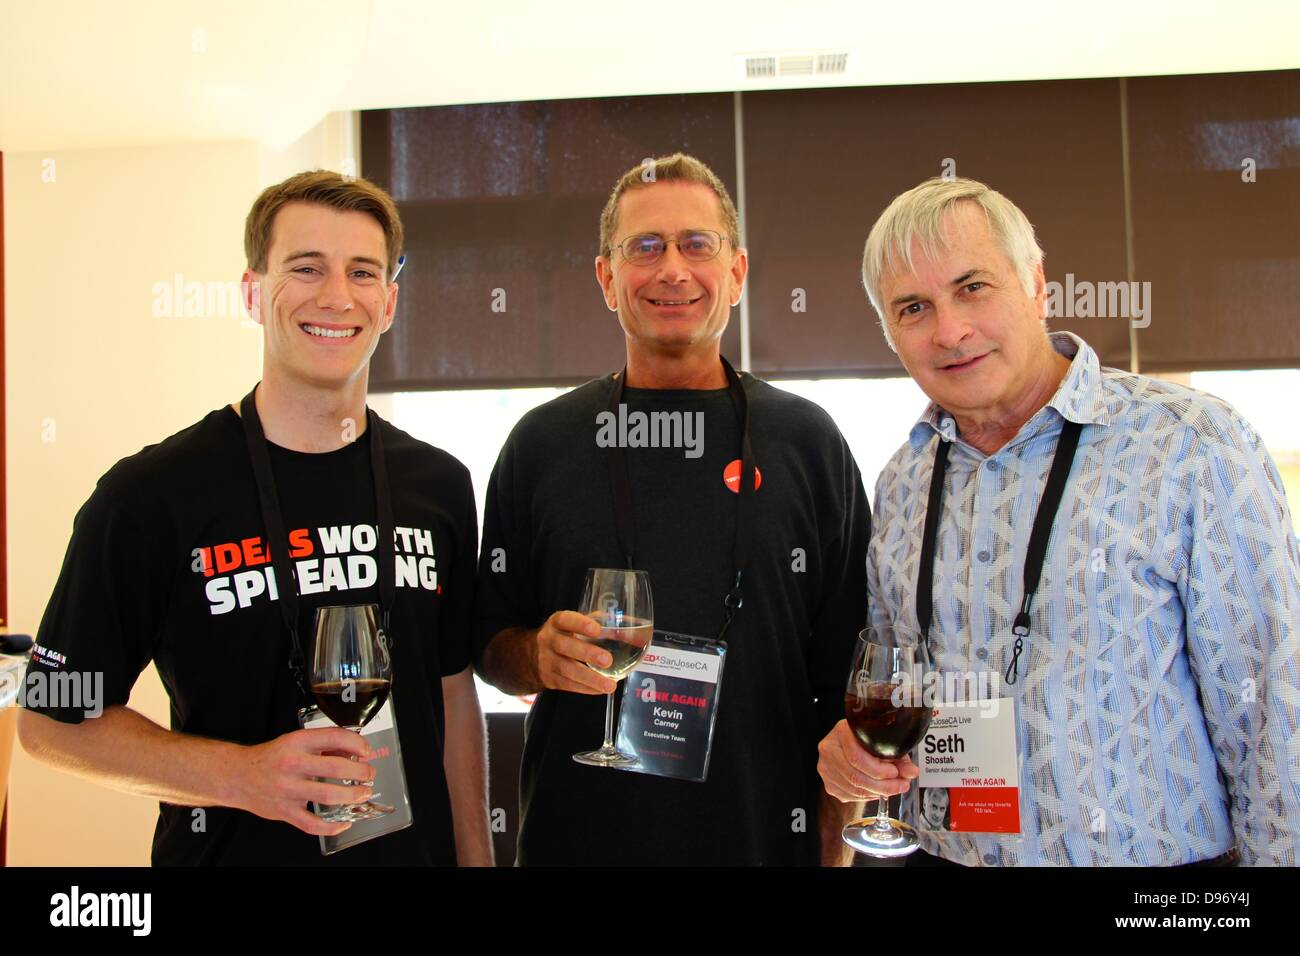 USA - San Jose, California 12th June 2013, The TEDx lecture series held in San Jose, California. From left to right: - Stock Image